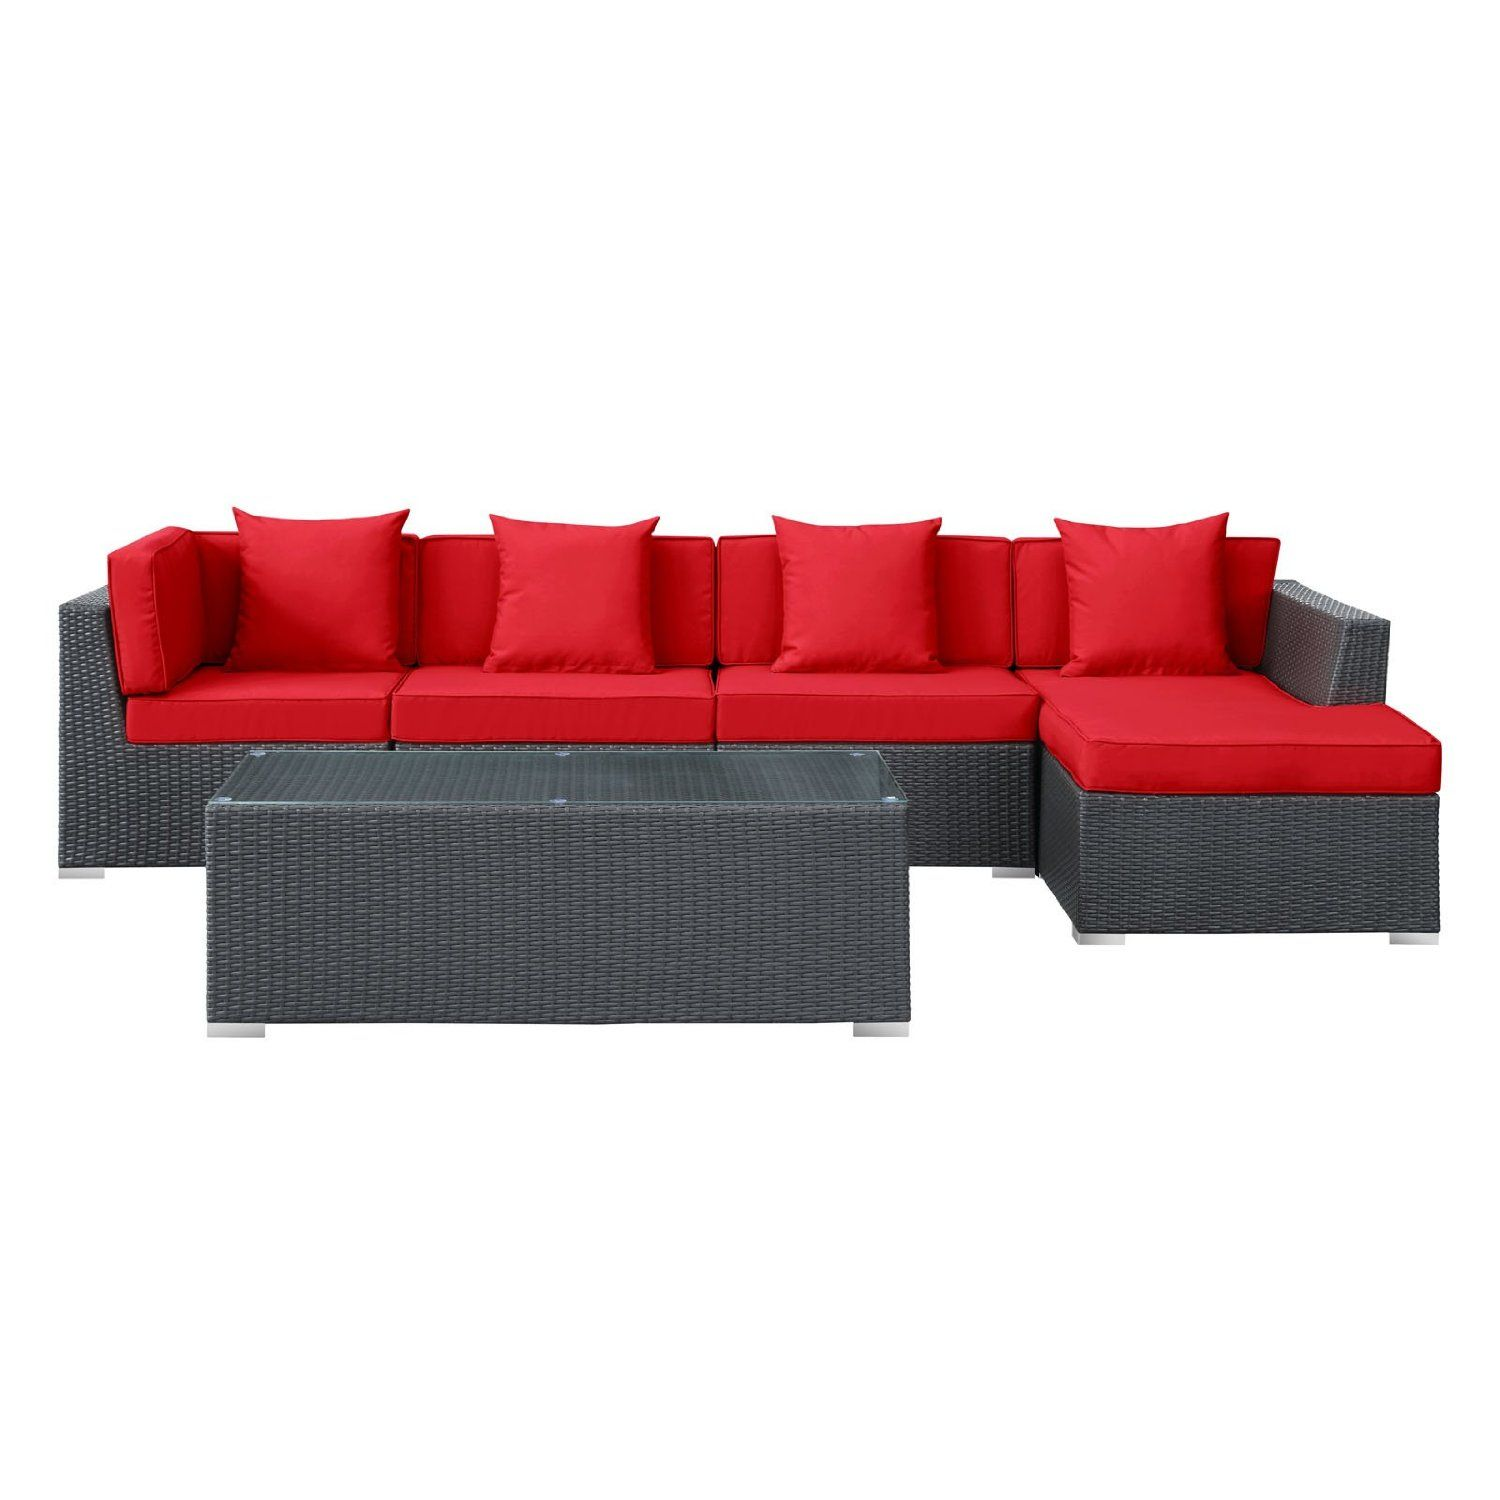 LexMod Signal 5 Piece Outdoor Wicker Patio Sectional Sofa Set